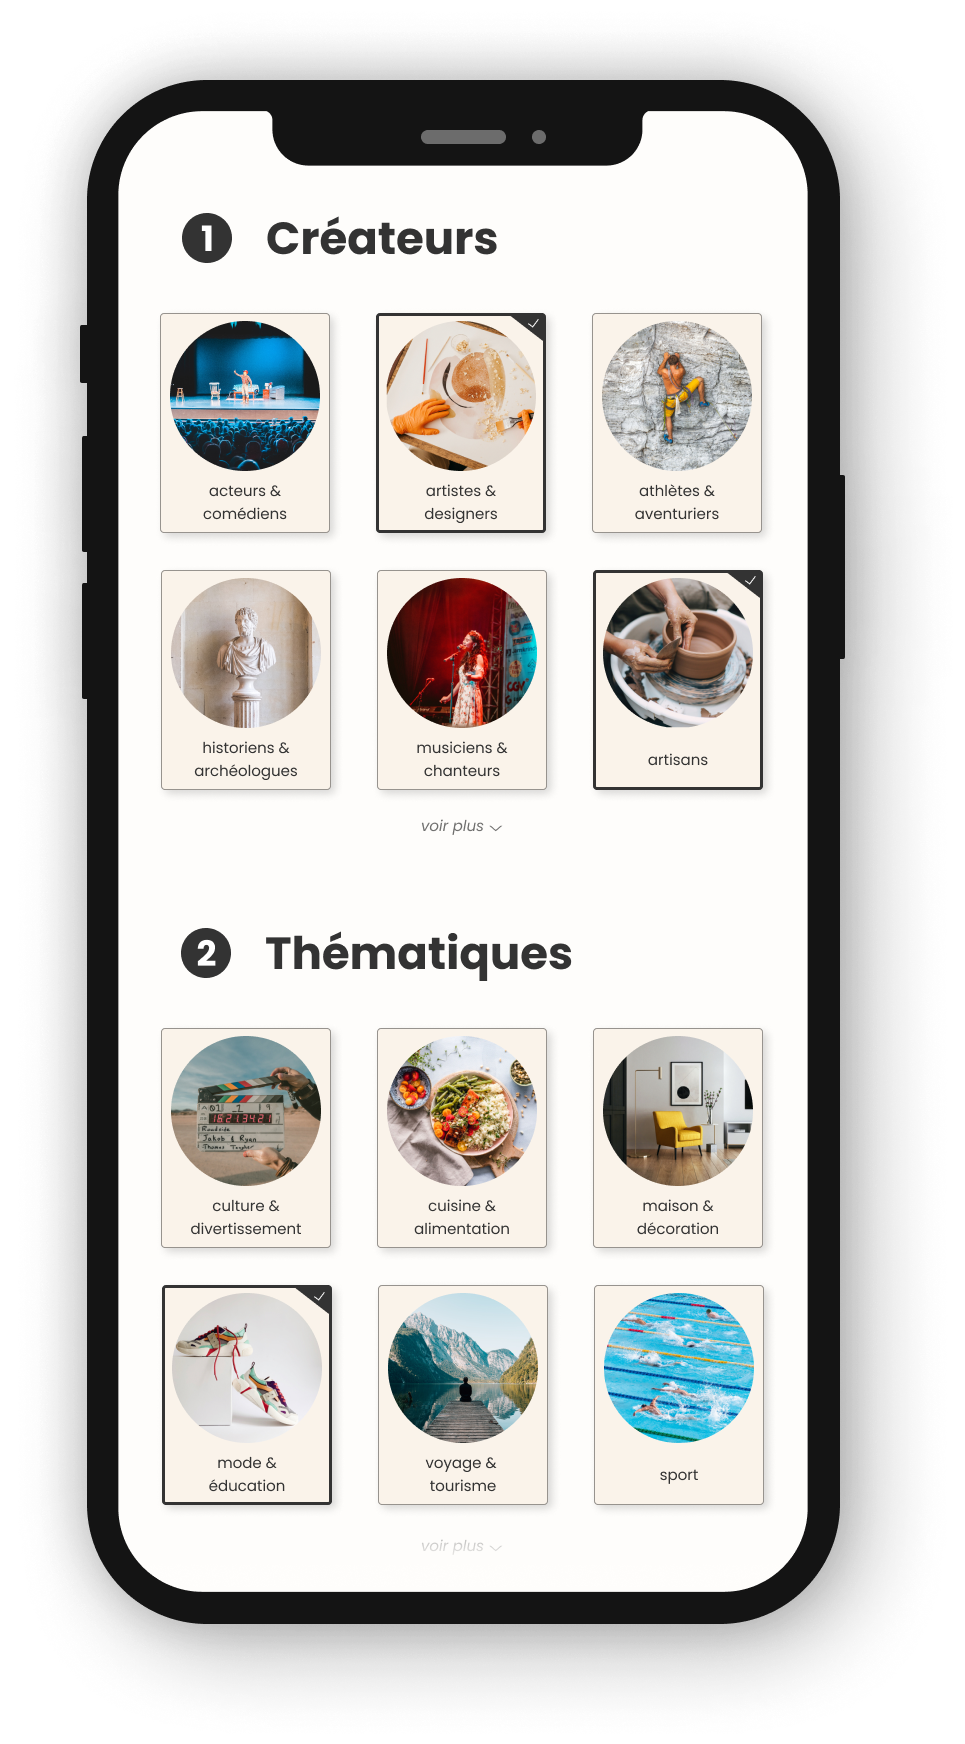 A mobile phone mockup showing options and themes available to users